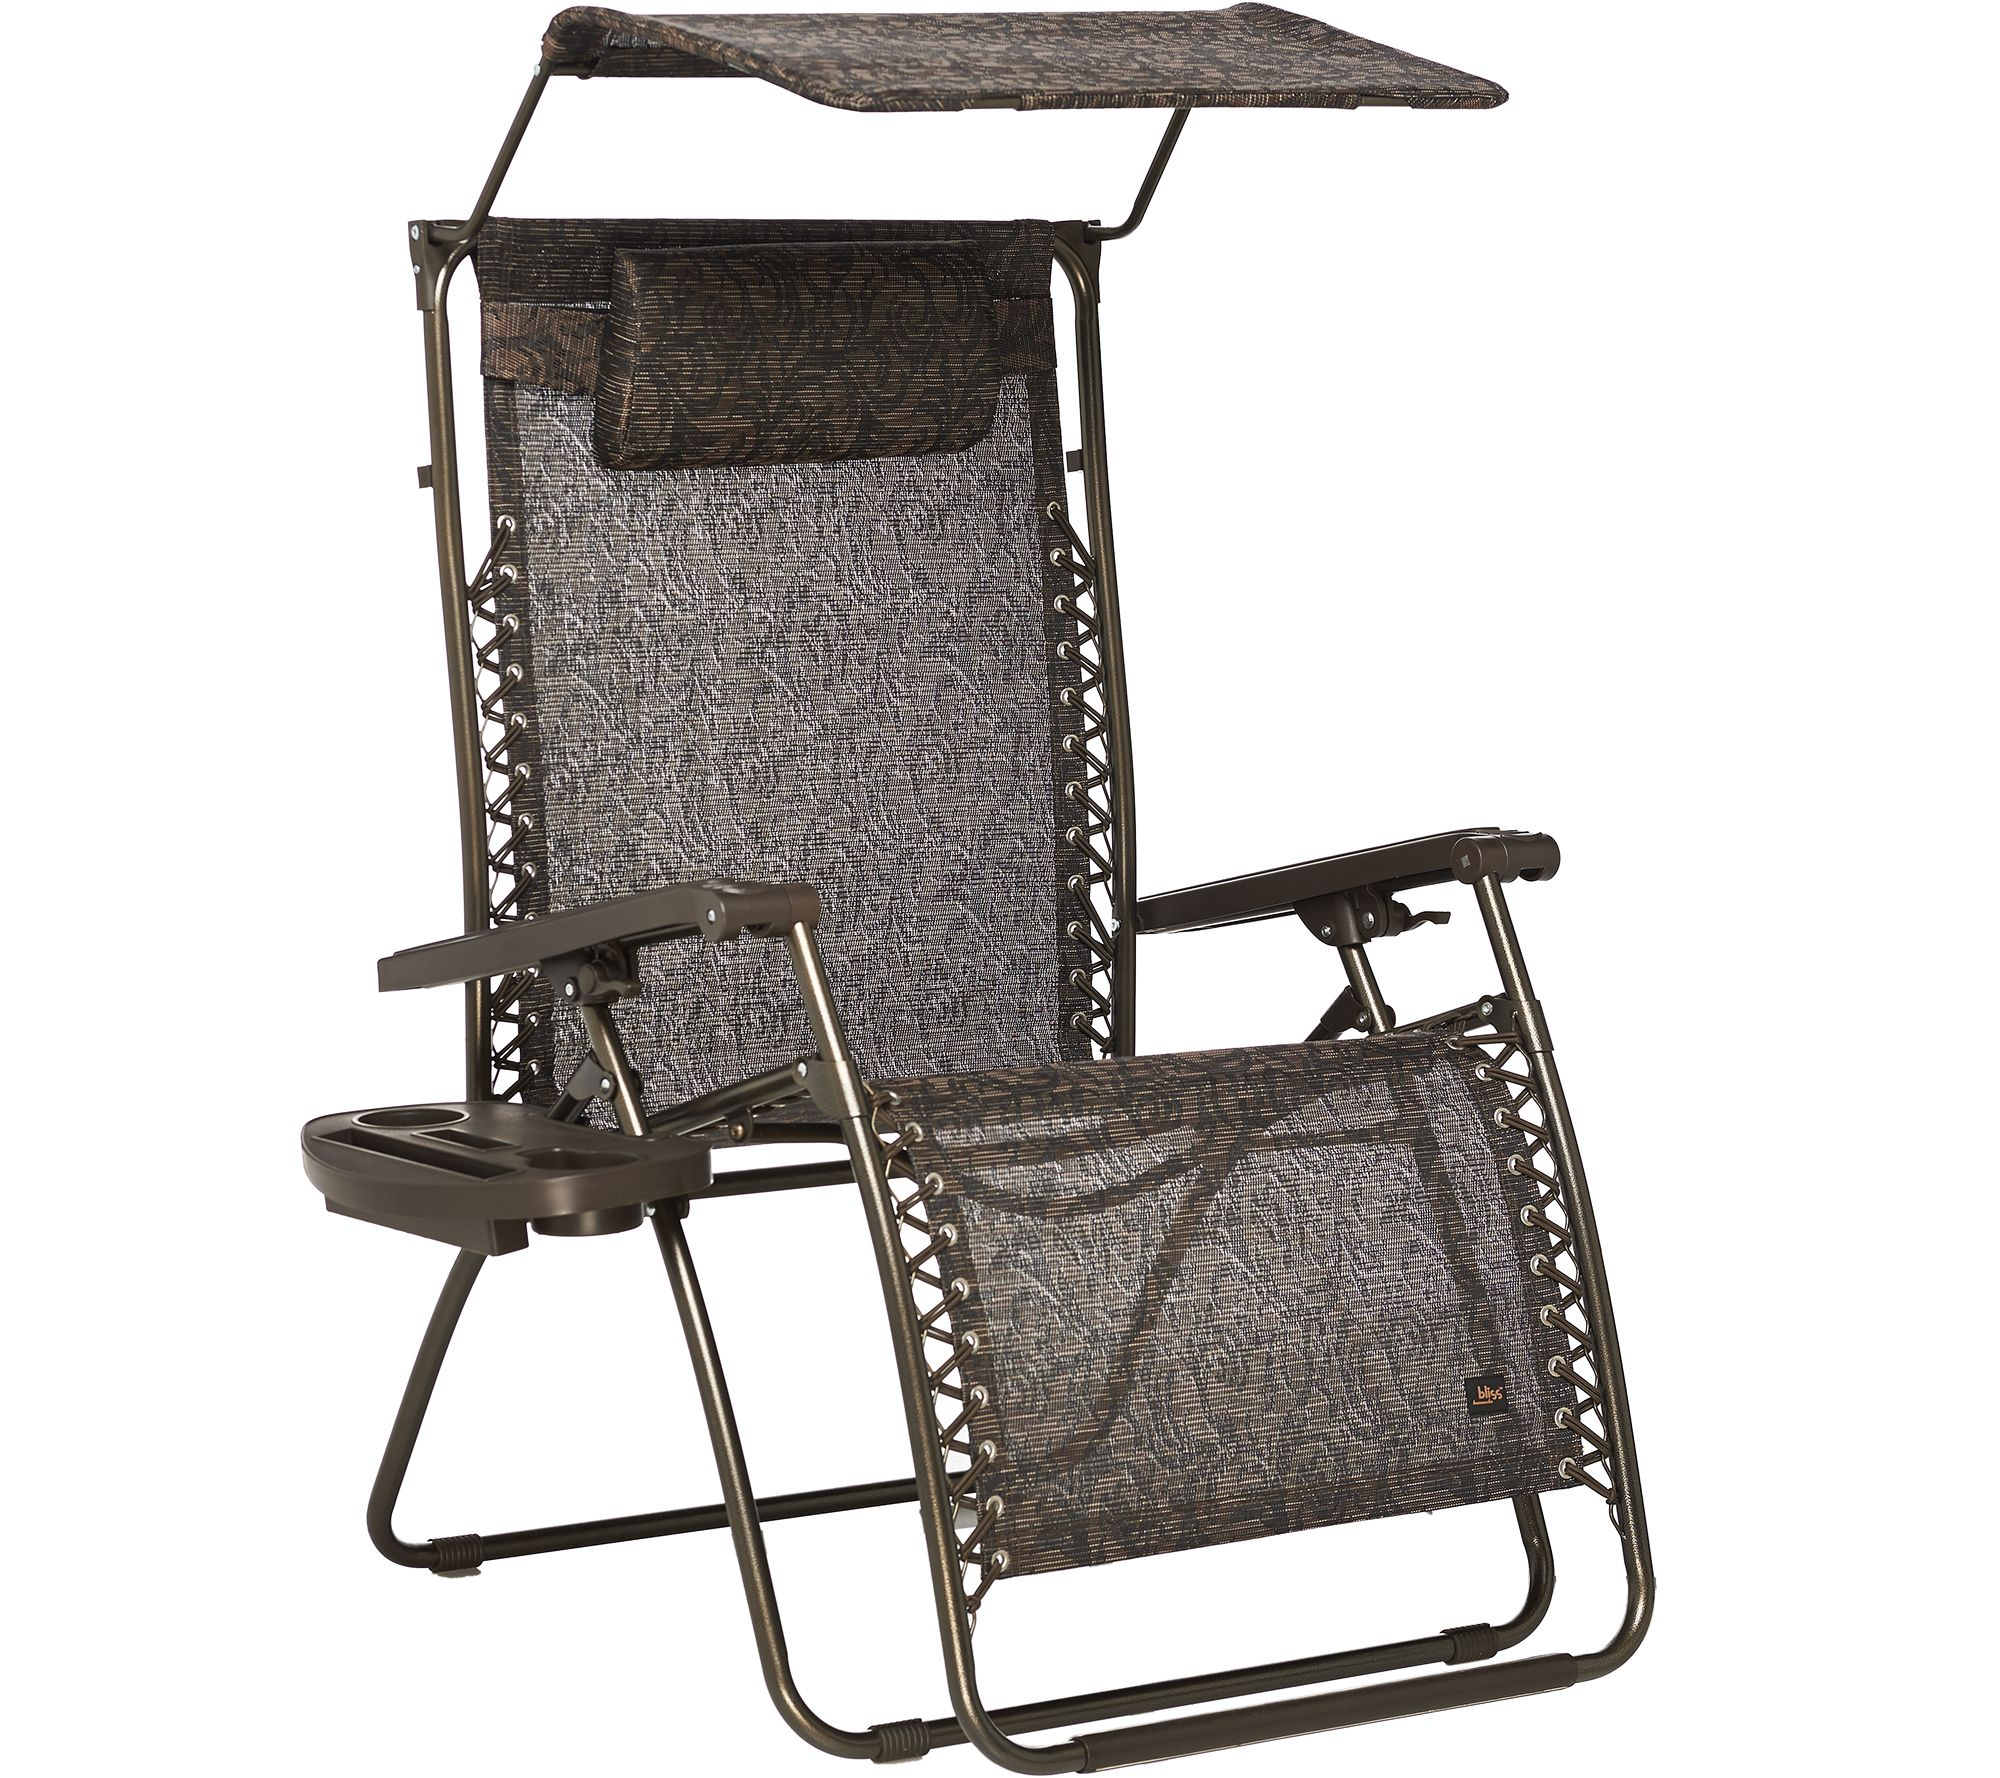 compare products options covered chairs gravity chair with free at zero shopping hammock deluxe b hammocks bliss outdoor sand prices recliner nextag